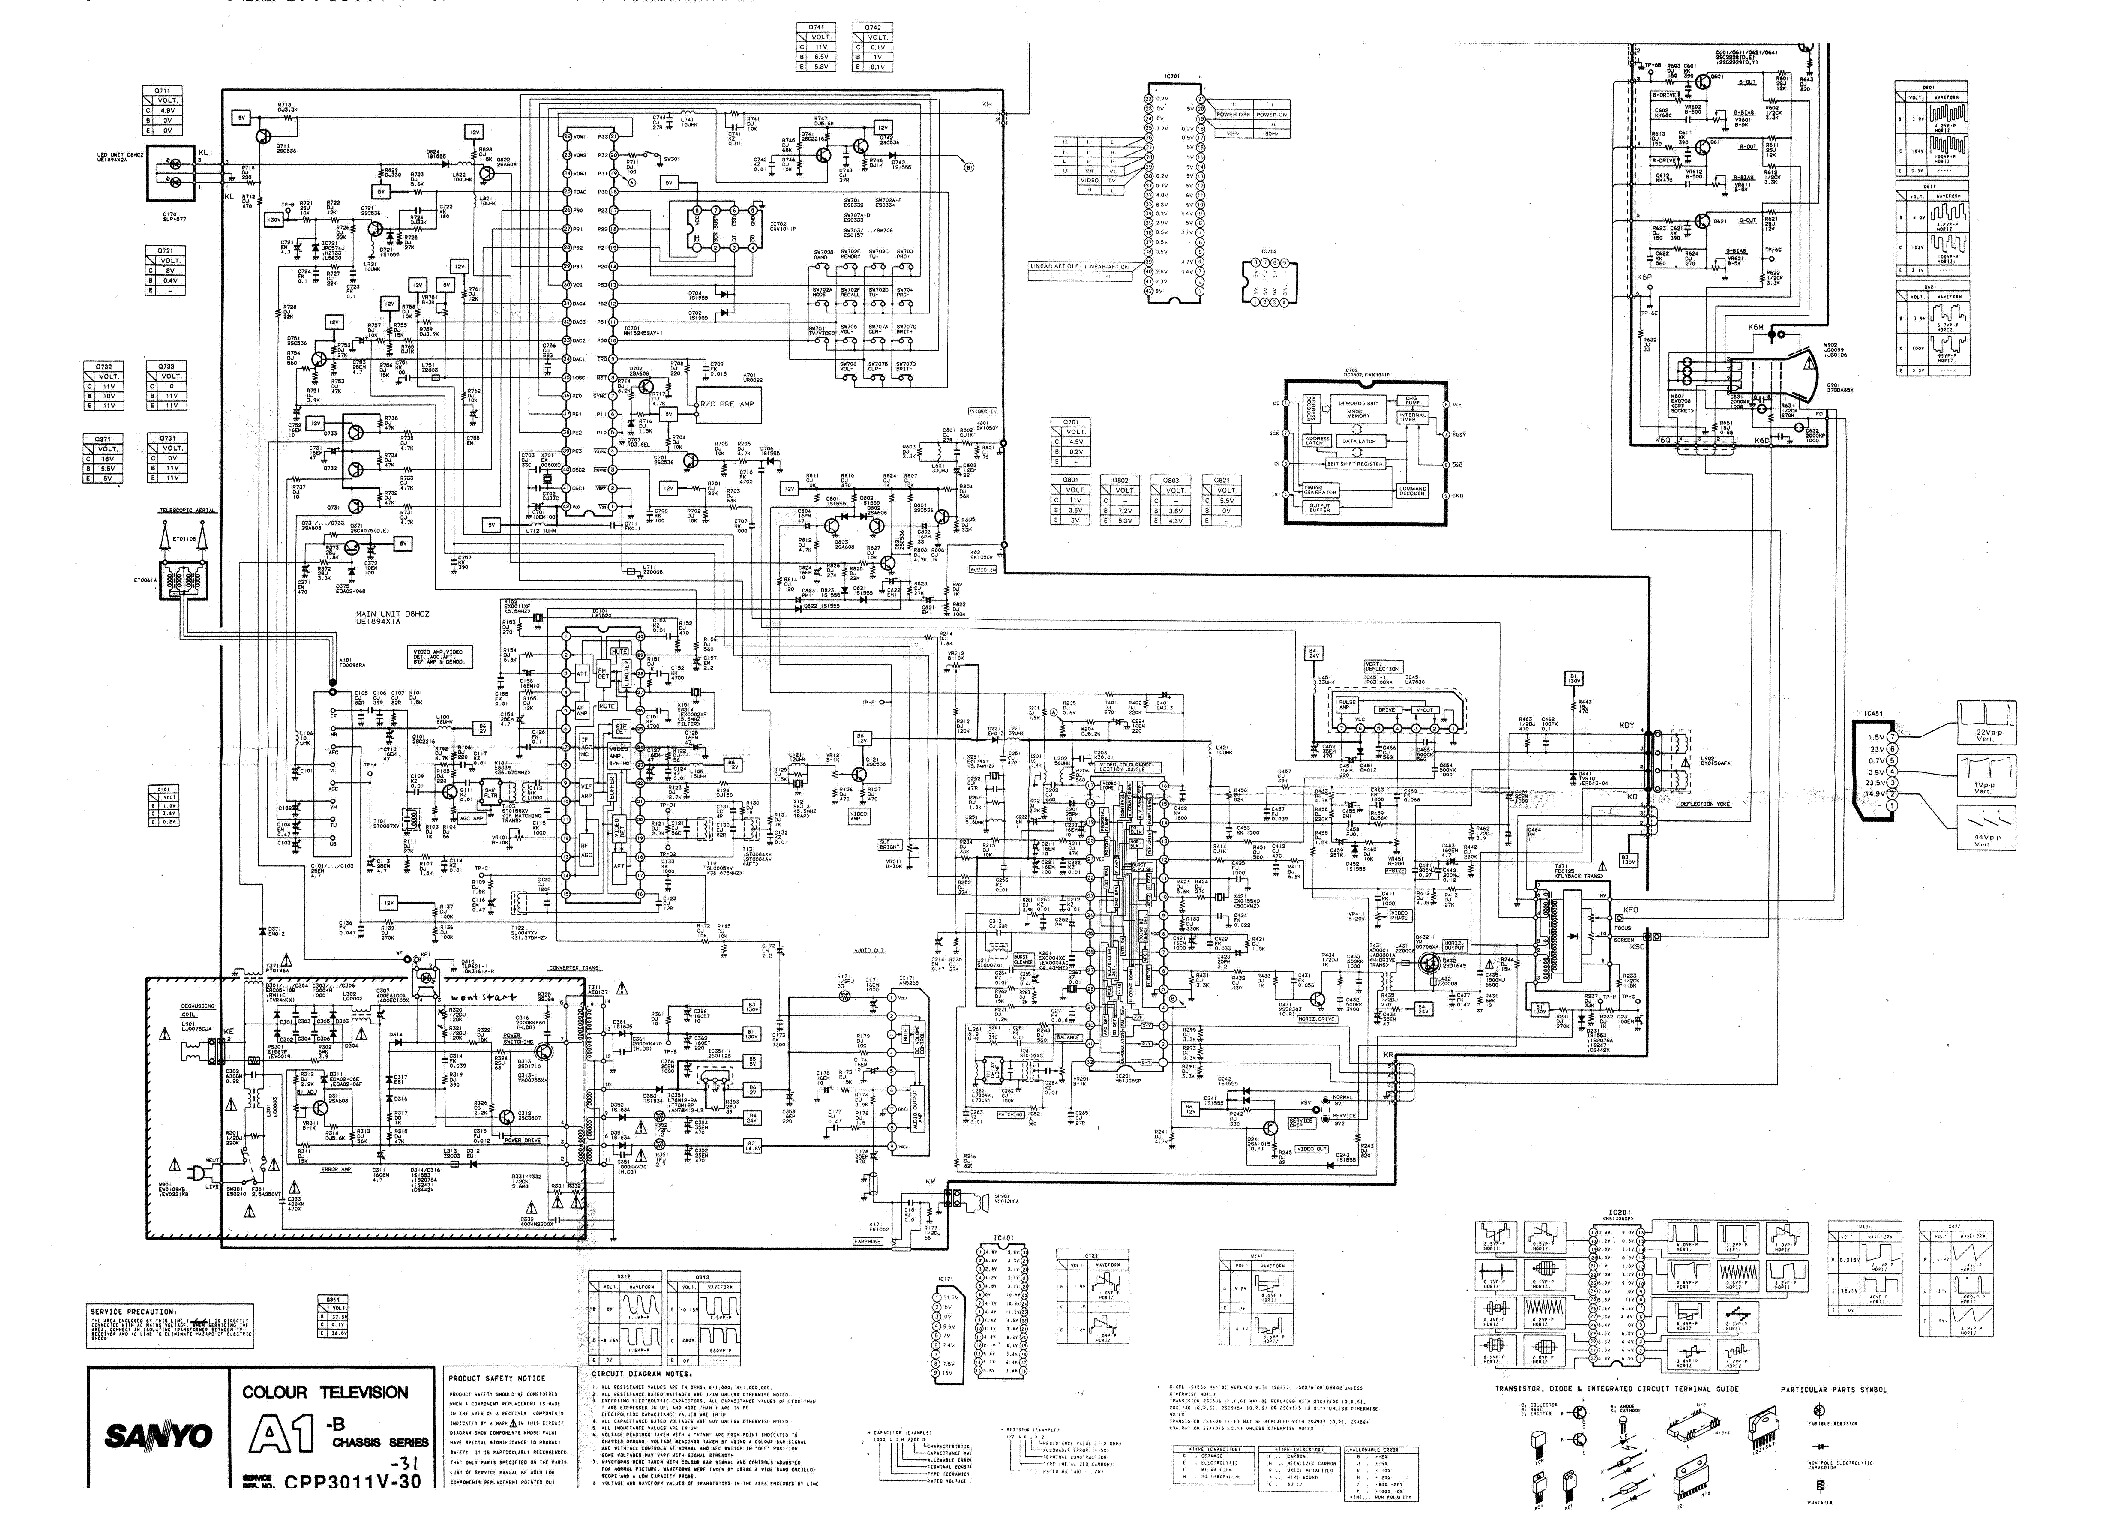 Sanyo Chassis A1b Cpp V30ab Sch Service Manual Download Schematics Eeprom Repair Info For